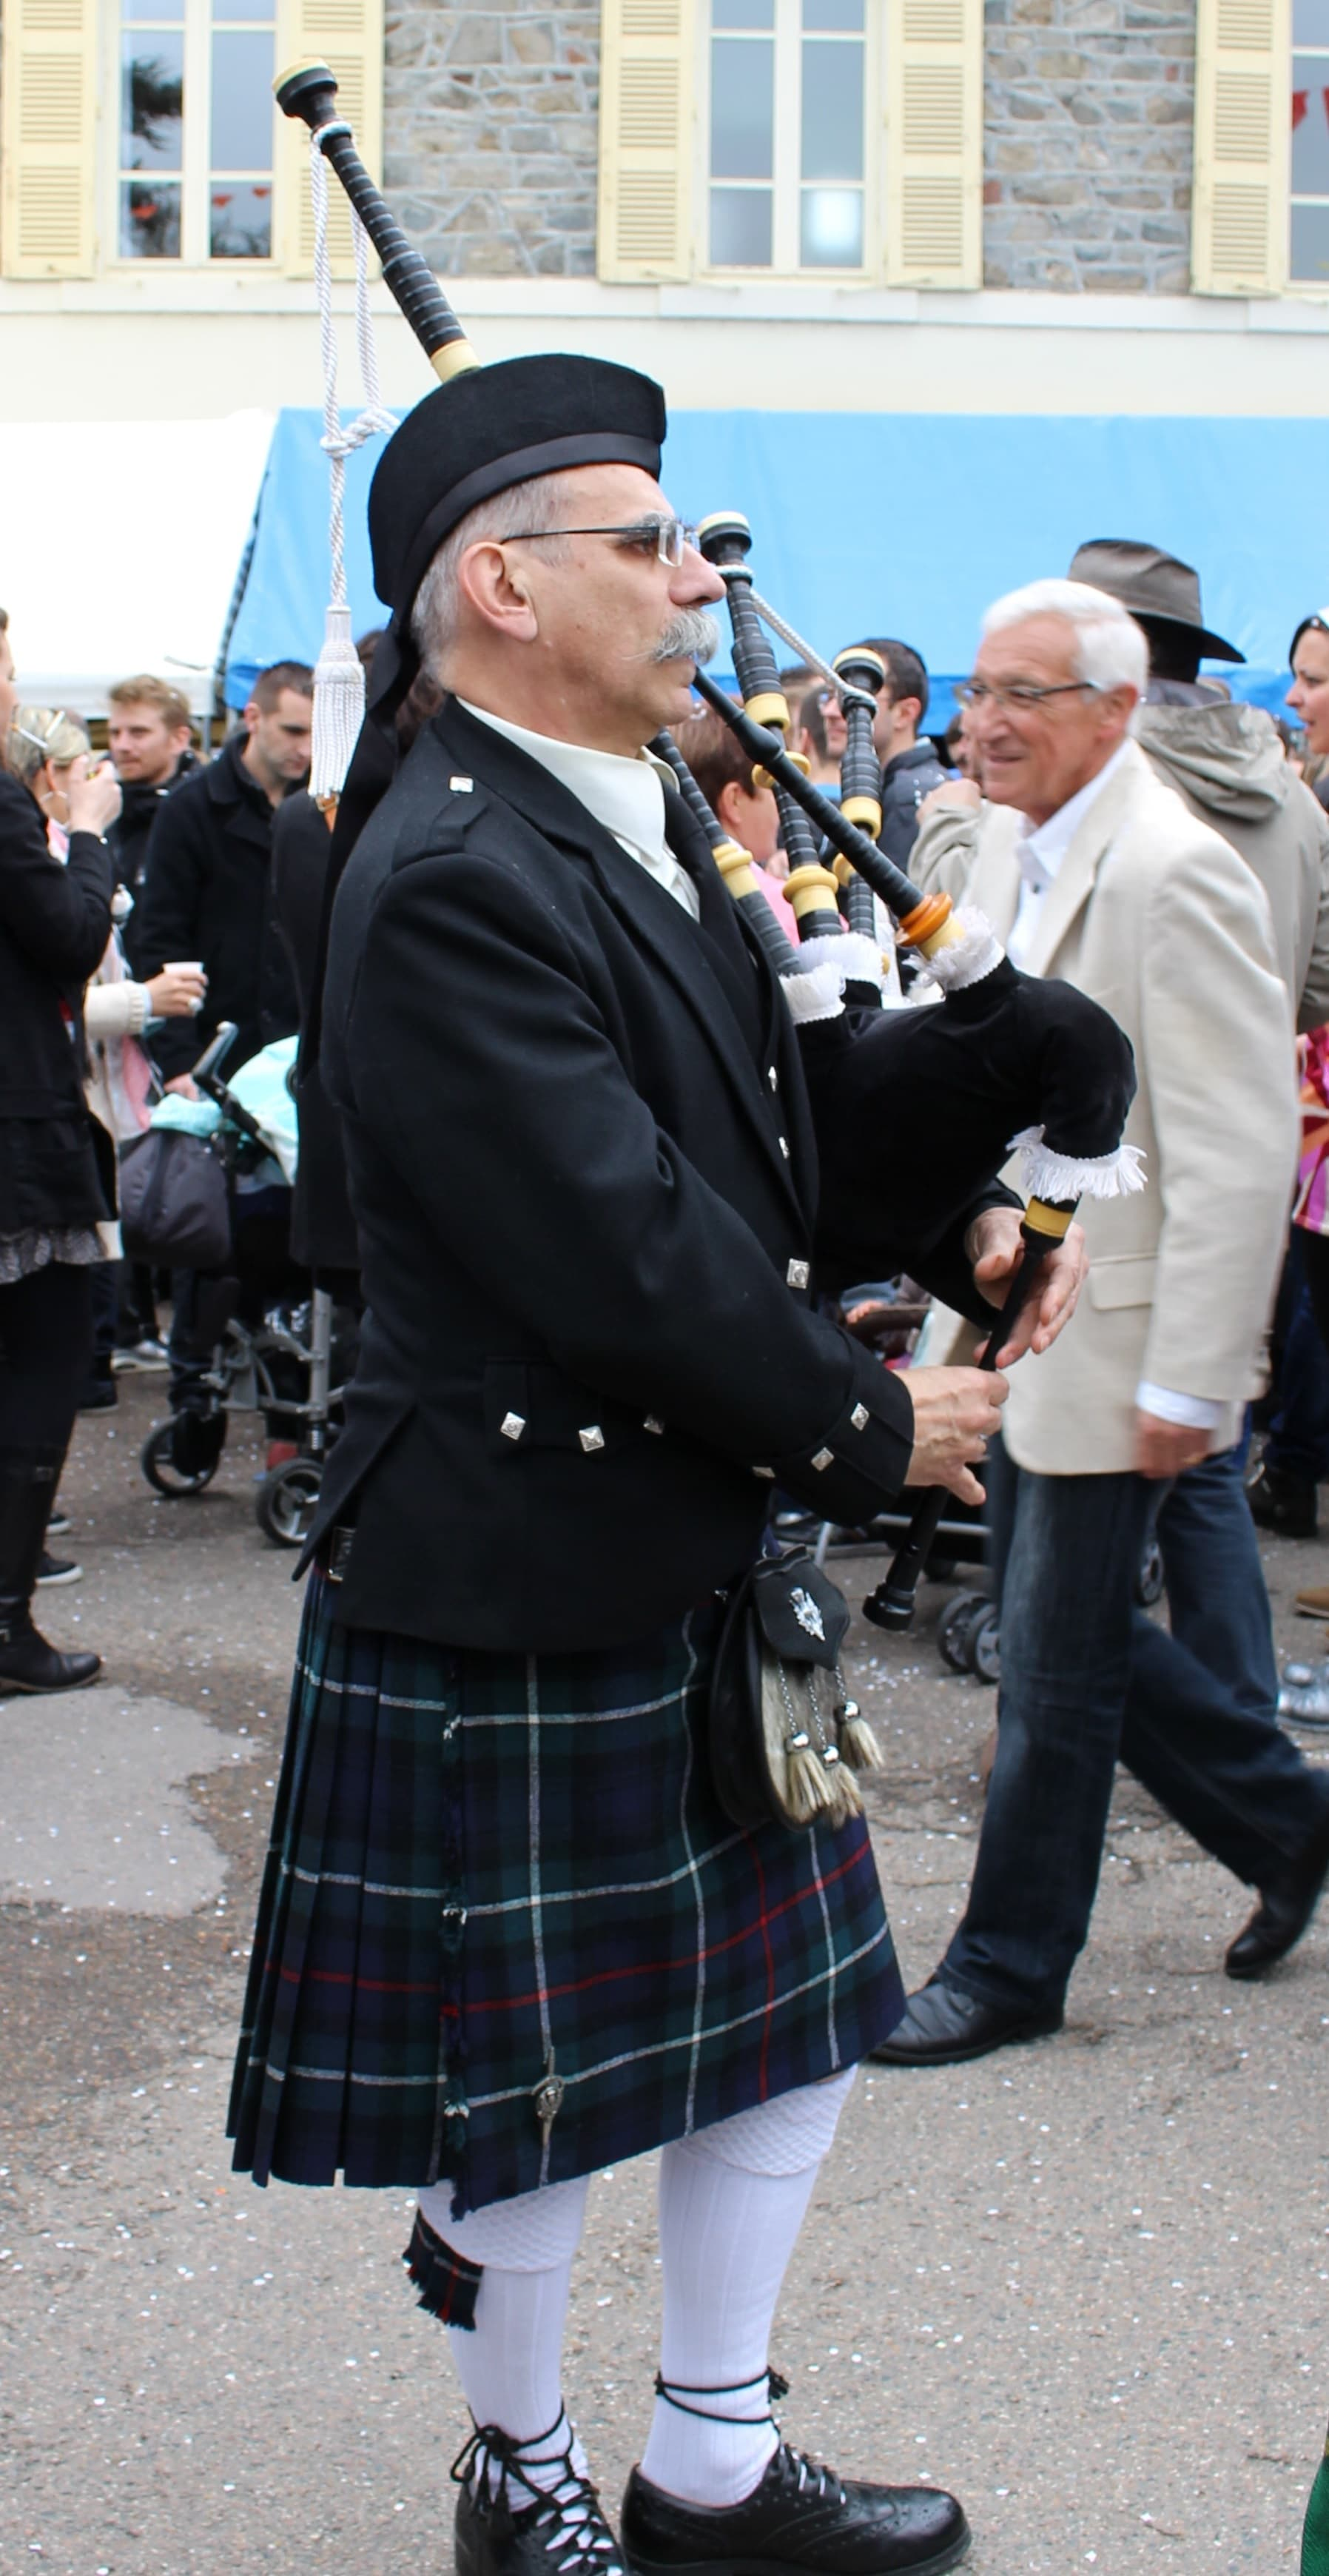 Sonneur de Grenoble - Edelweiss pipers Pipe Band Chambéry Amplepuis 17-04-2016 (65)